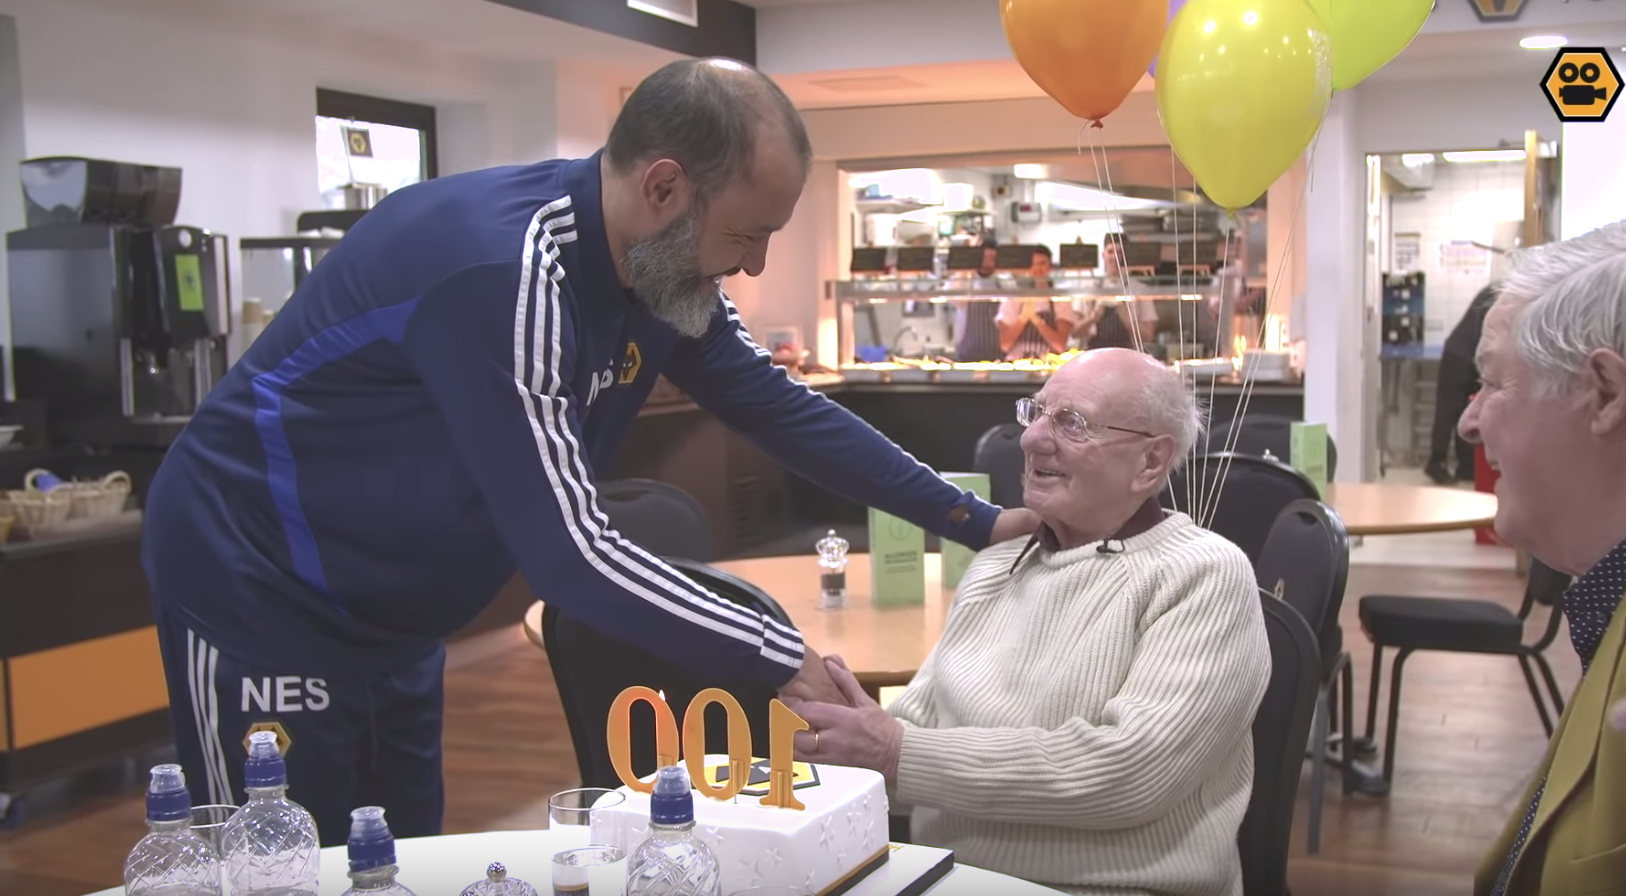 Wolverhampton Wanderers FC Surprise A Fan On His 100th Birthday